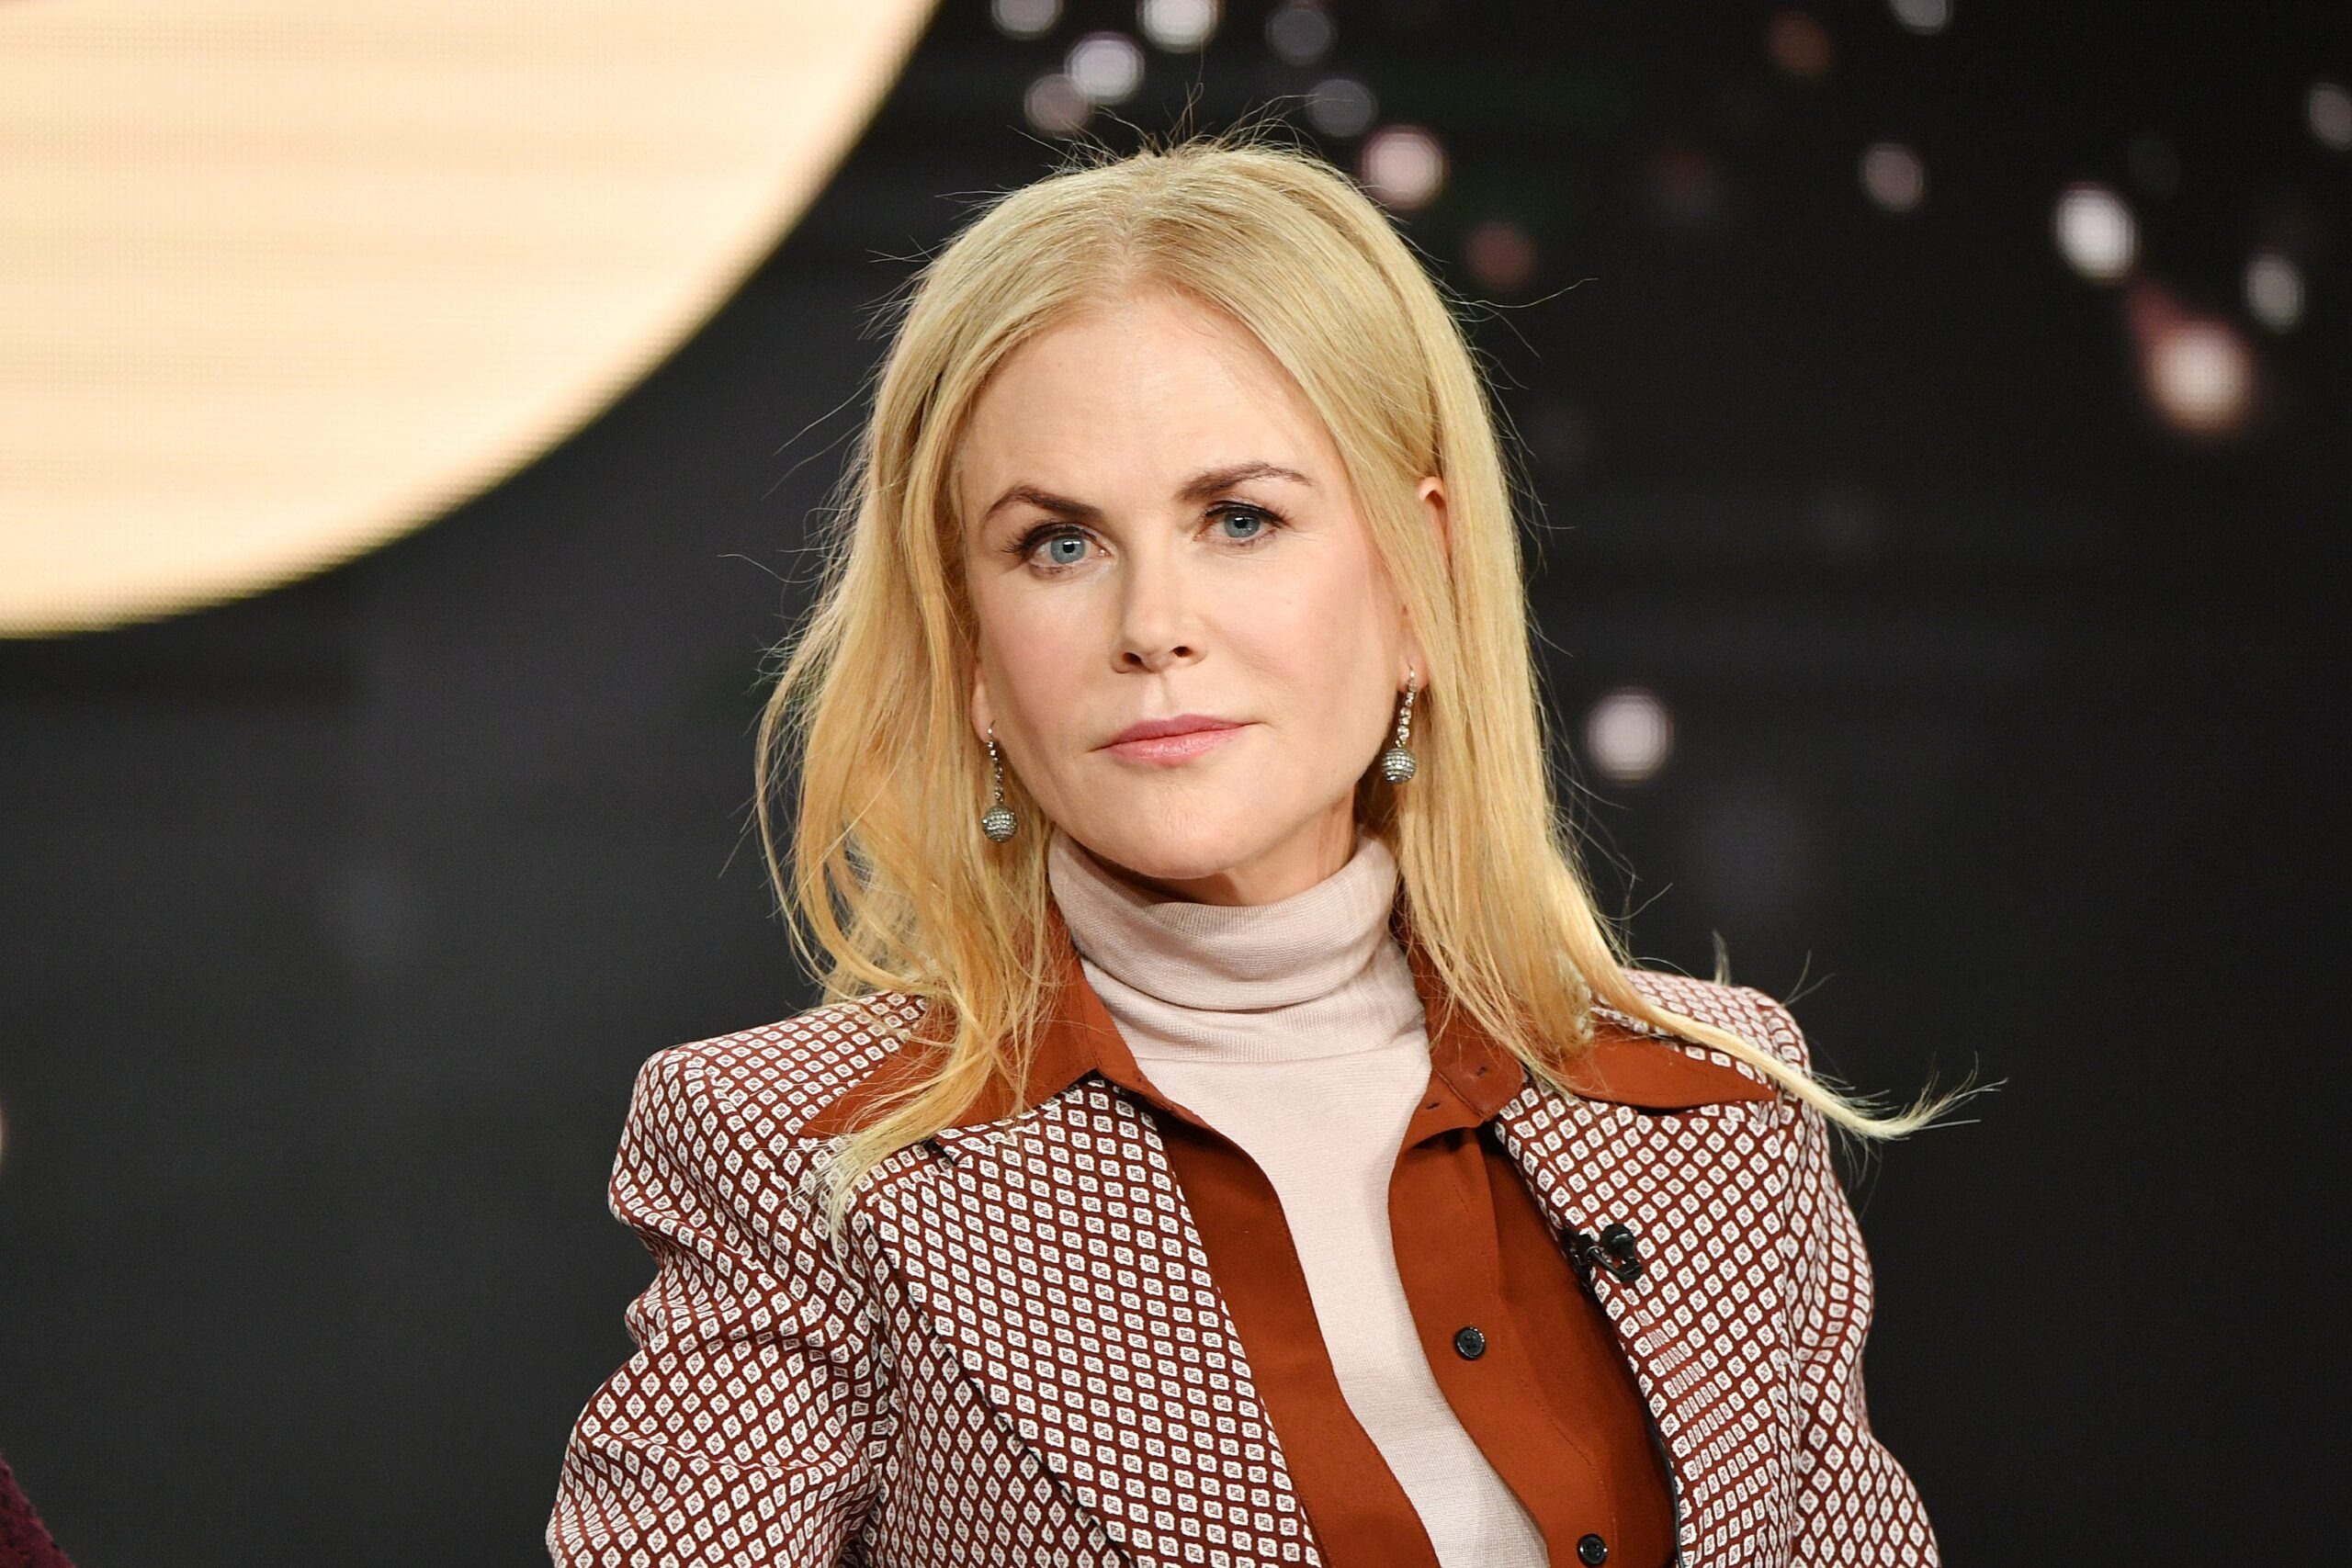 Nicole Kidman Biography, Facts & Life Story Updated 2021